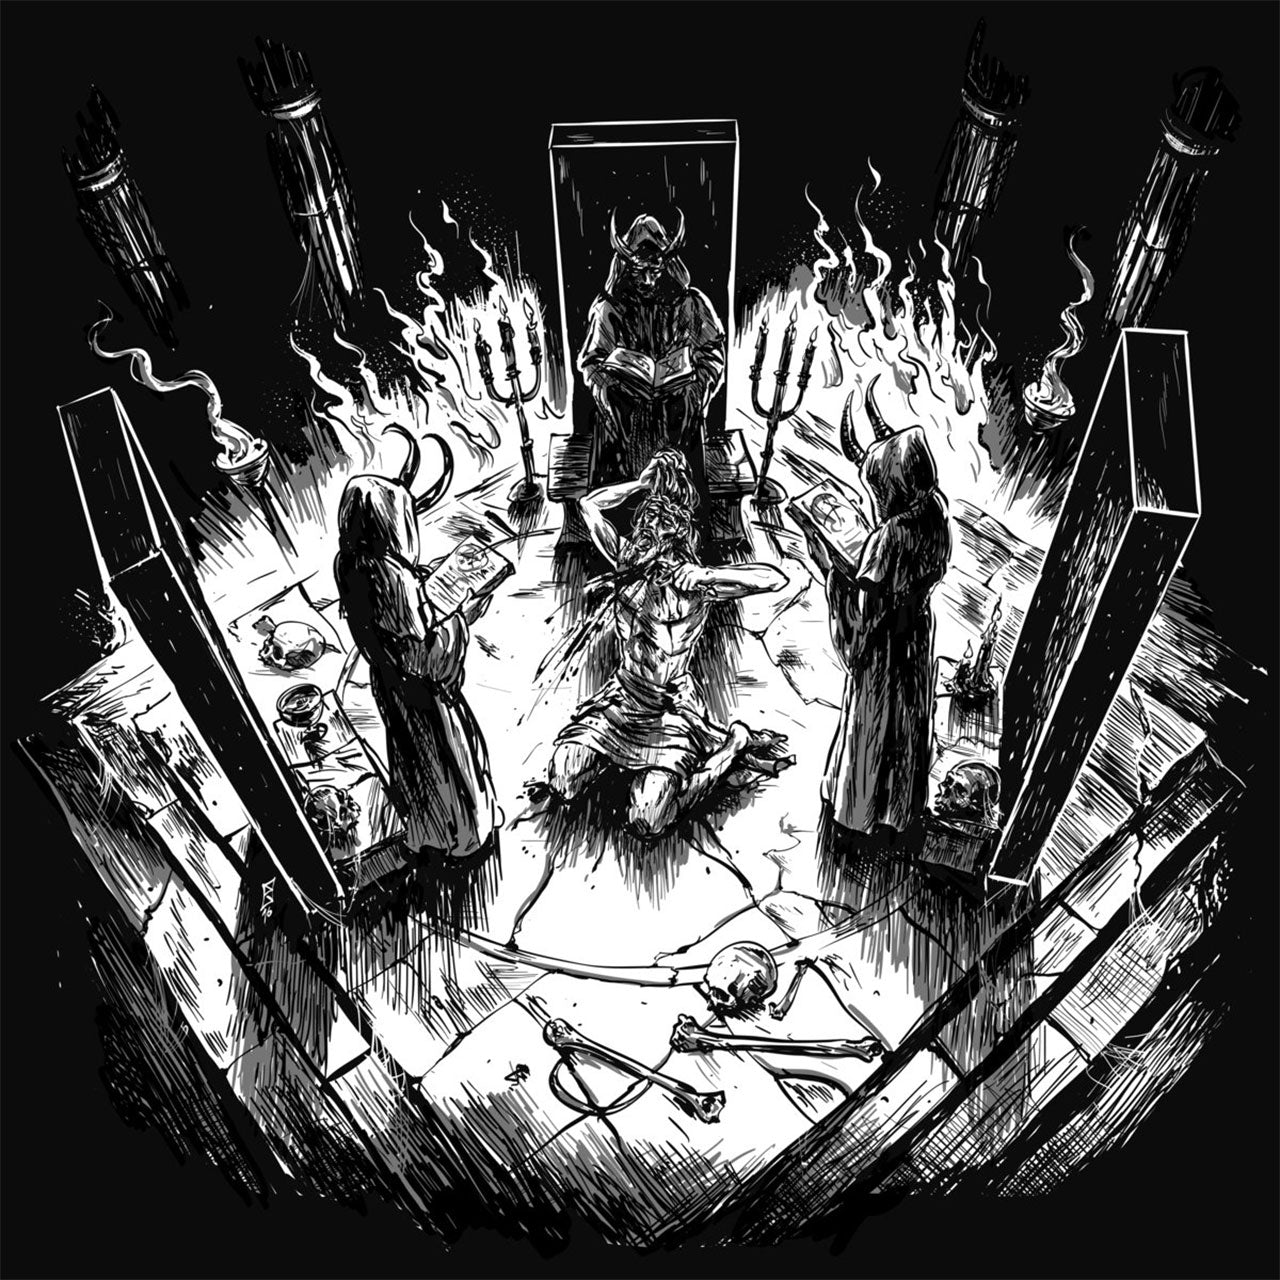 Blood Chalice - Sepulchral Chants of Self-Destruction (CD)